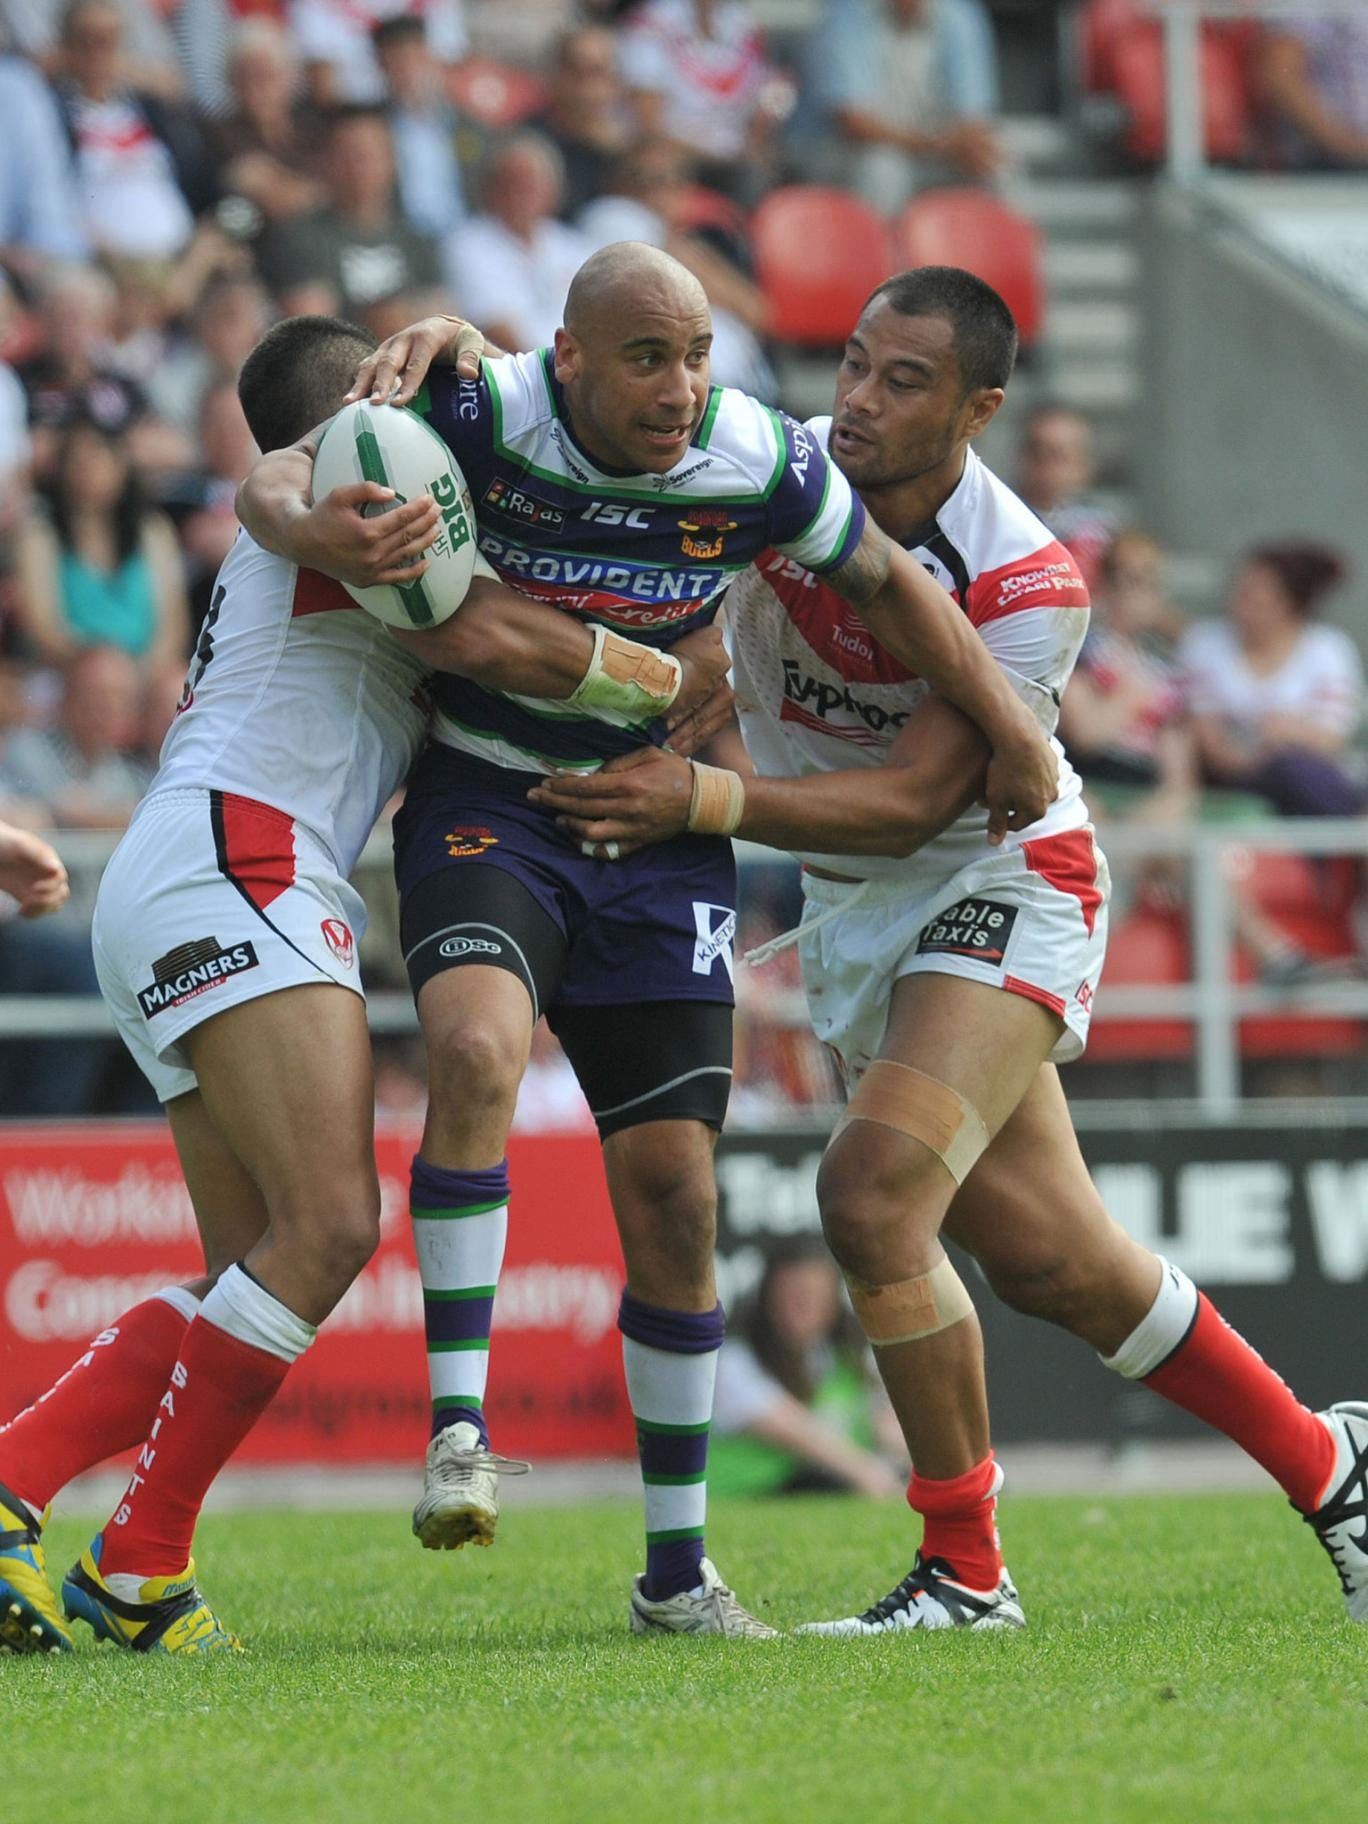 Bradford's Matty Blythe, centre, is tackled by St Helens' Willie Manu, left, and Tony Puletua, right, as the home team prove to be too strong for the Bulls